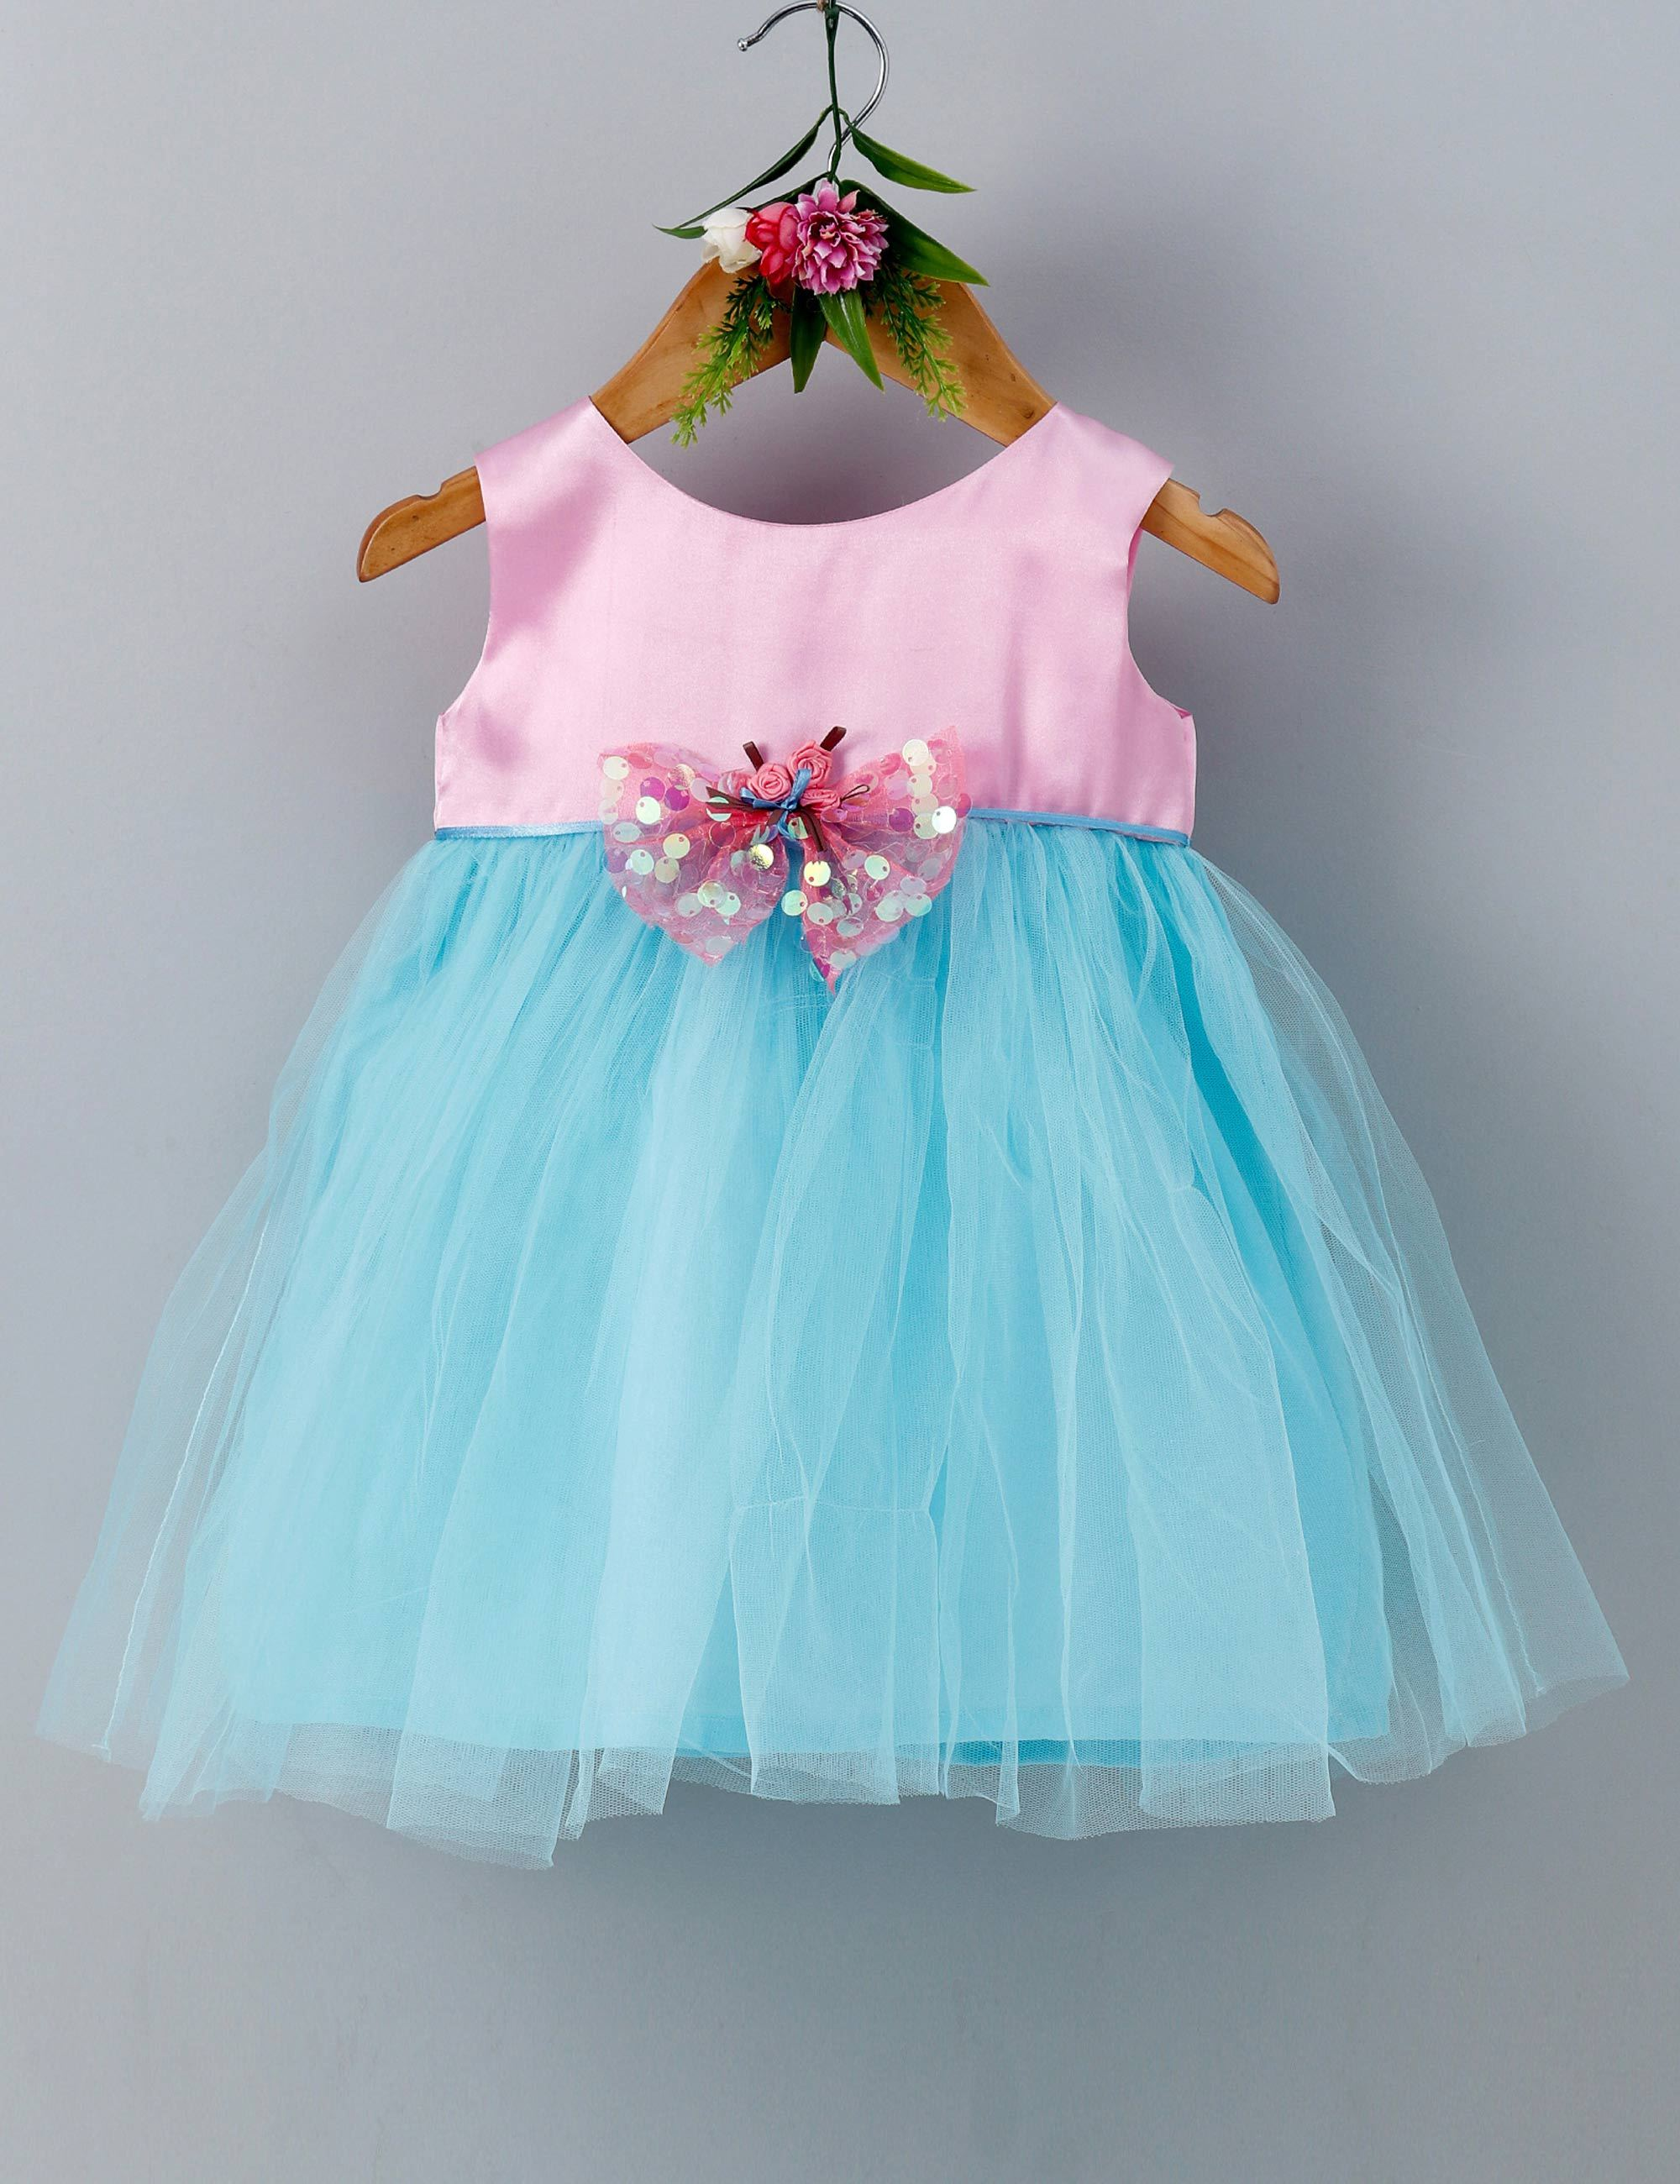 Sequins bow sleeveless baby party frock- Pink and Blue